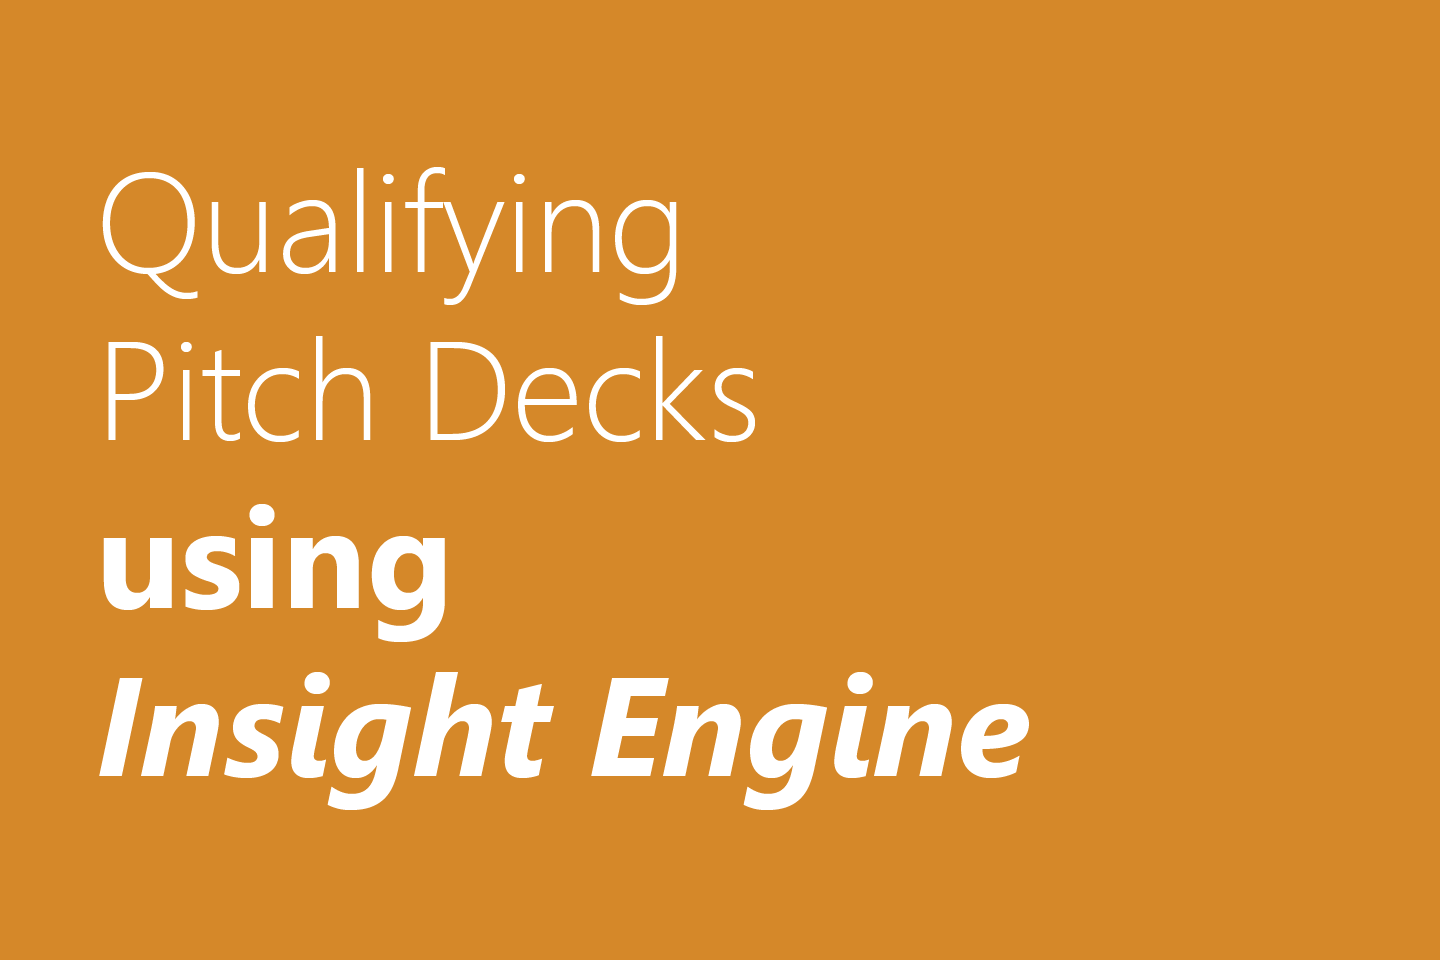 Qualifying Pitch Decks using Insight Engine